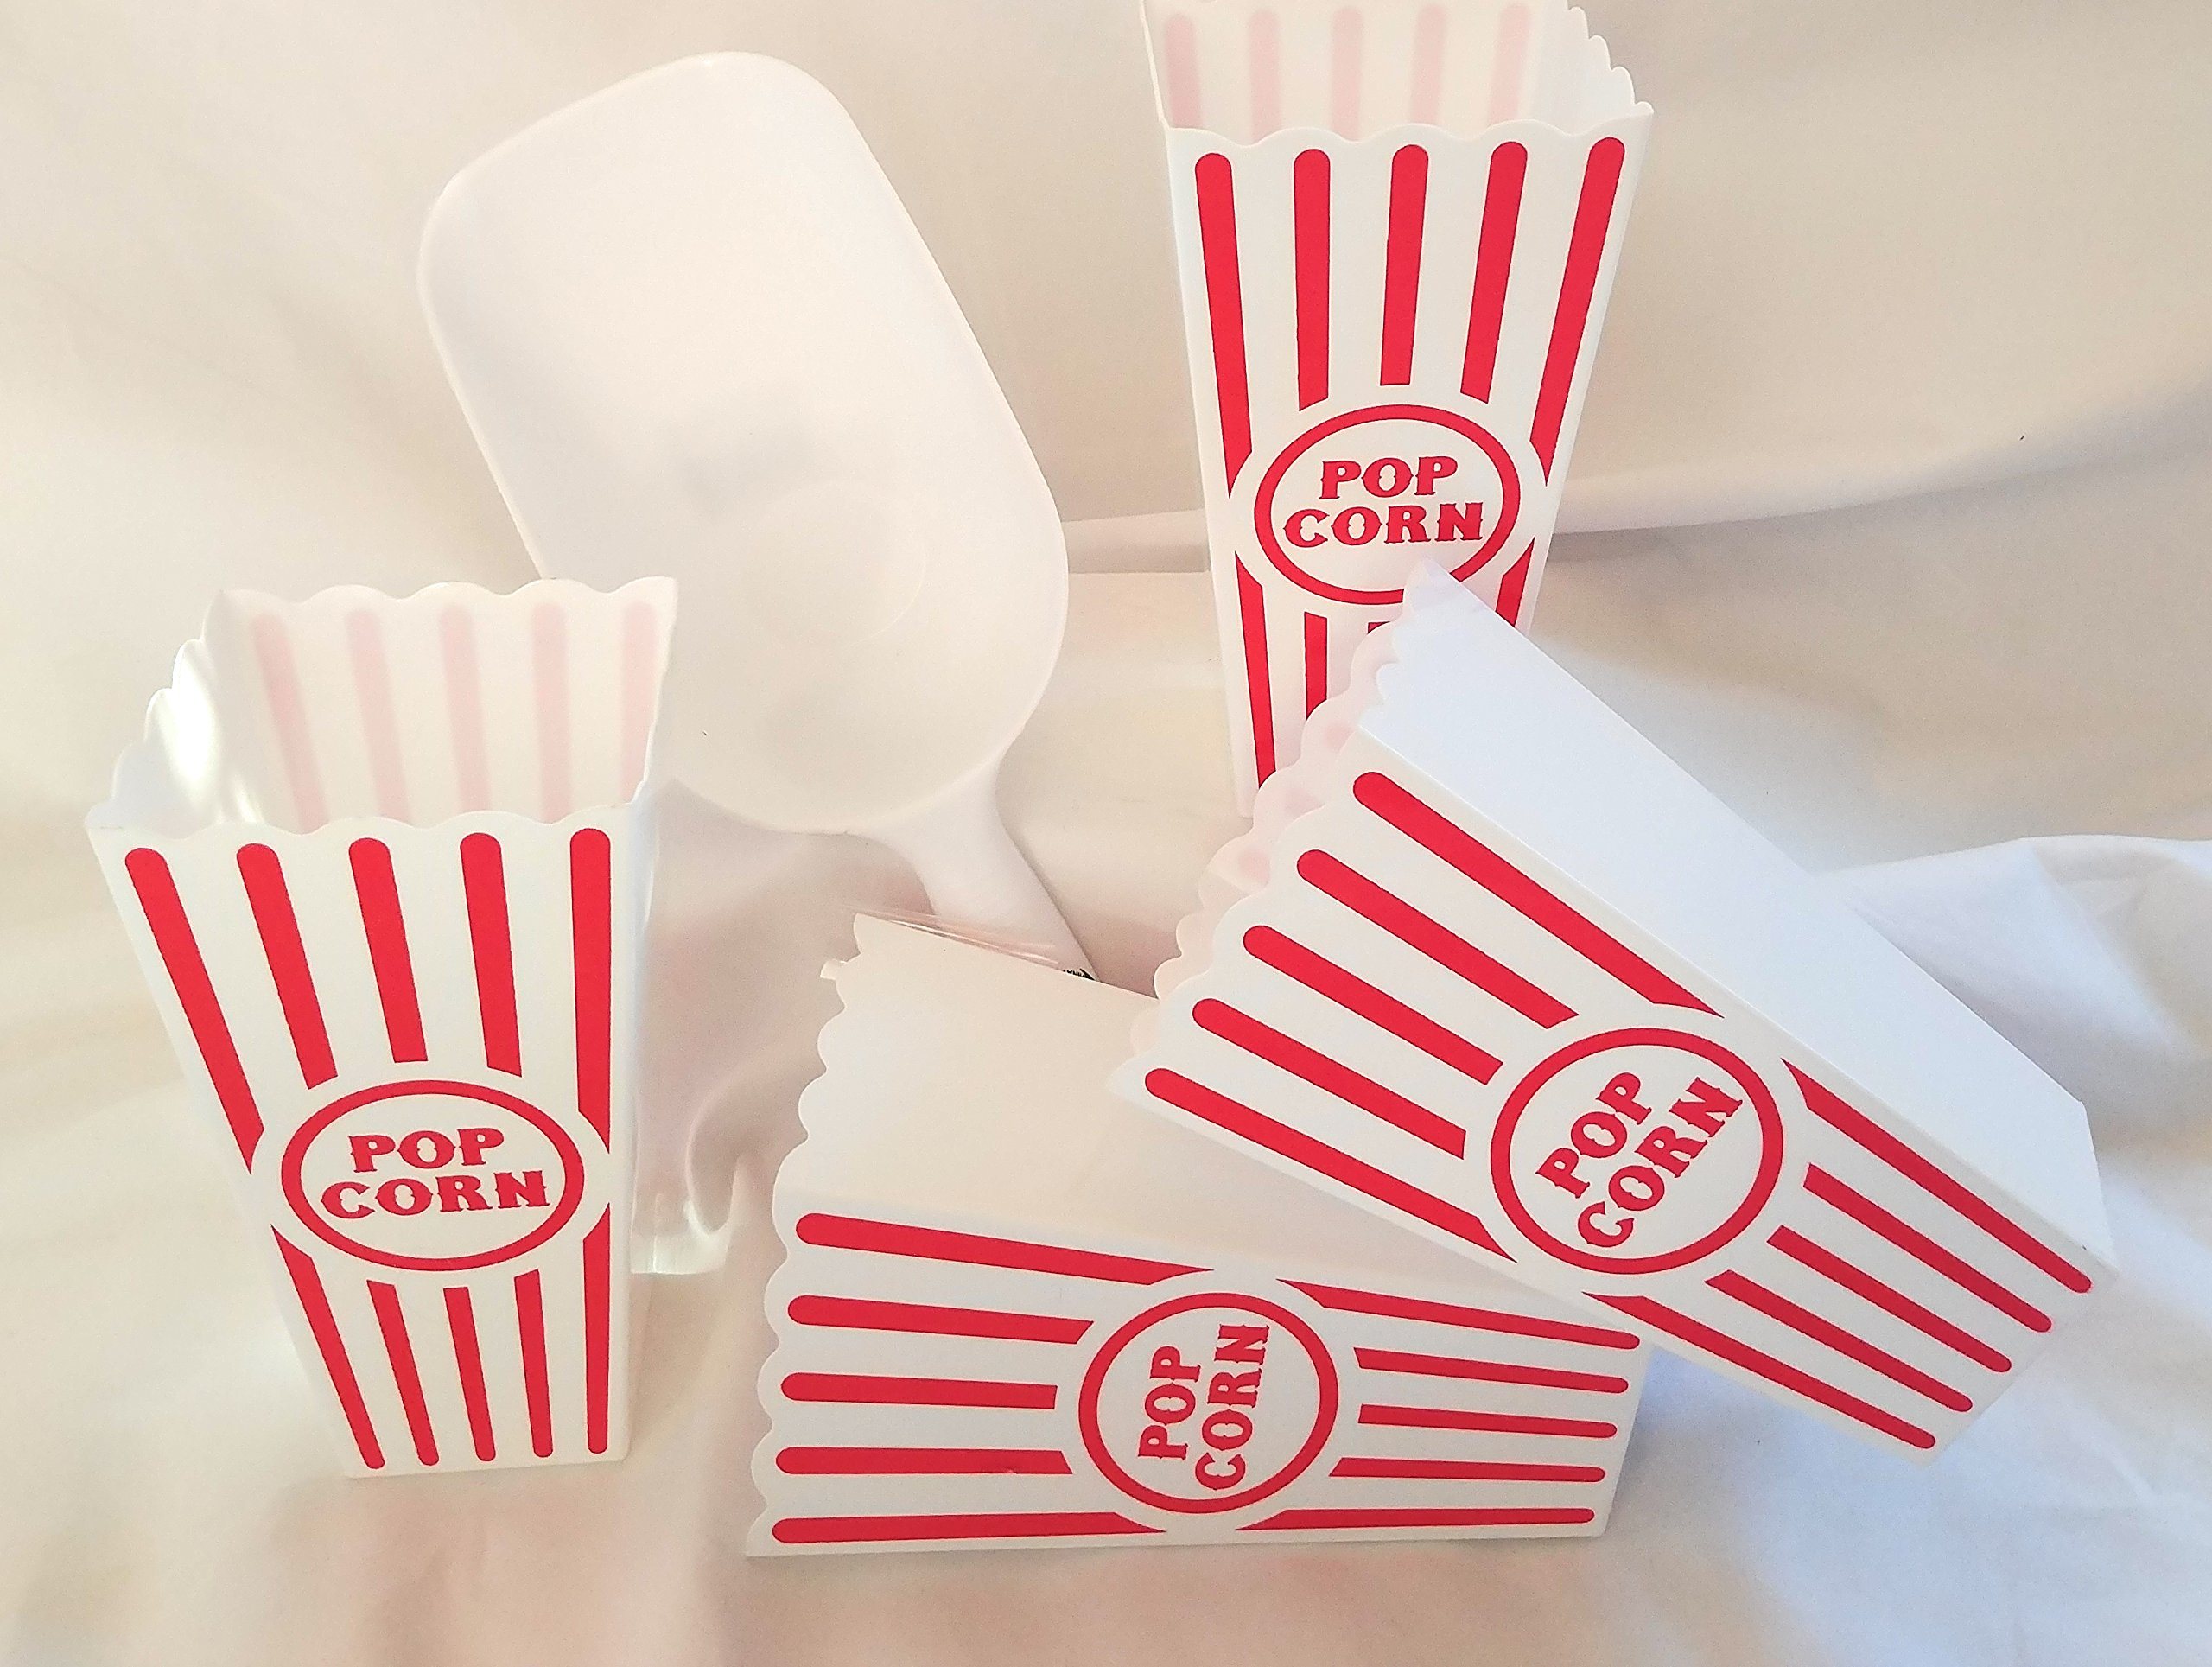 Everyday Whim Popcorn Container with Popcorn Scoop, Reusable Plastic Tub Set of 4 and 2-cup Popcorn Scoop